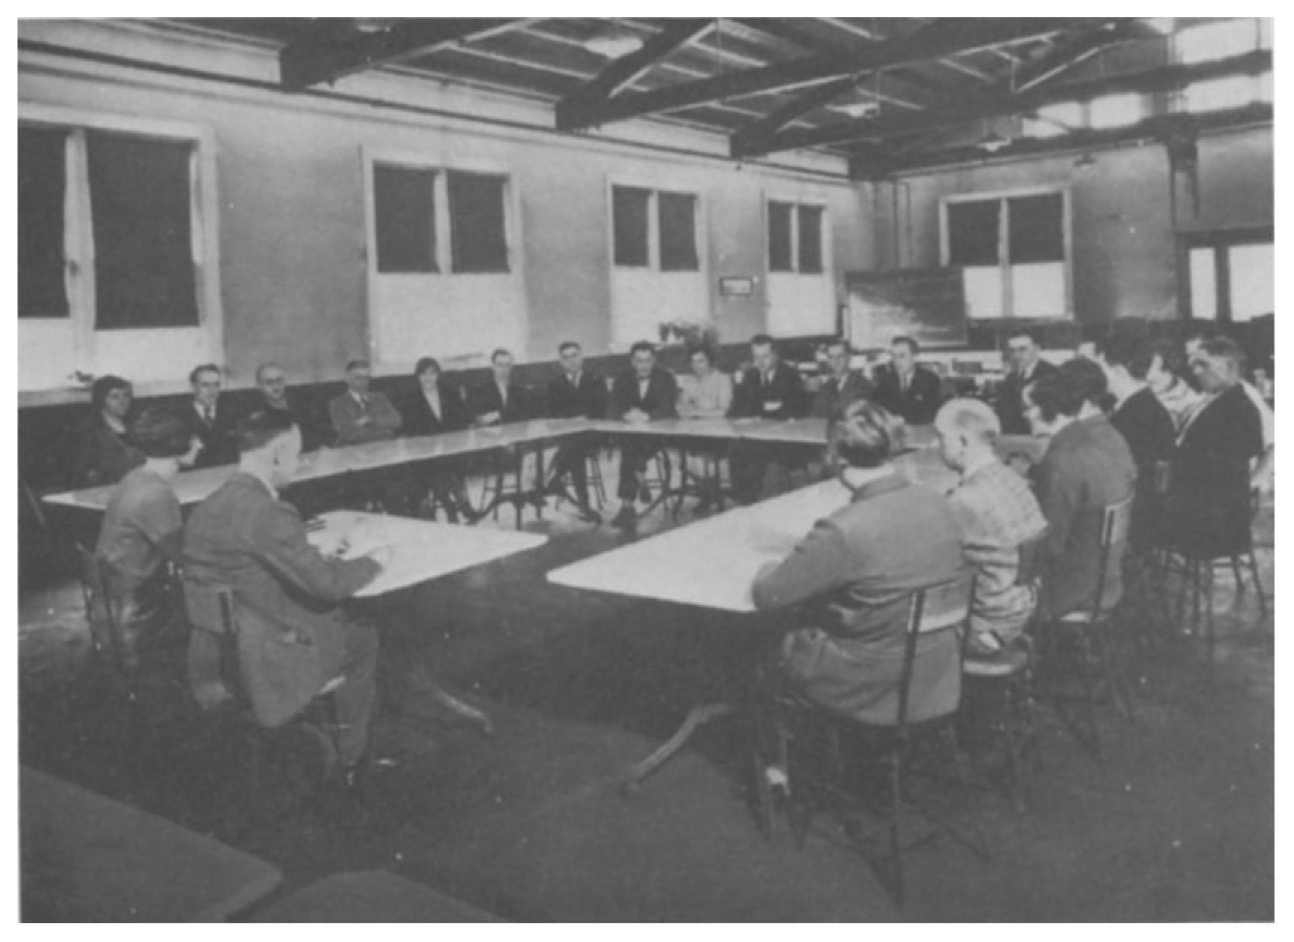 A Columbia Conserve Council Meeting, circa 1920s (Bussel 1997; crediting The Lilly Library, Indiana University, Bloomington, Indiana).jpg